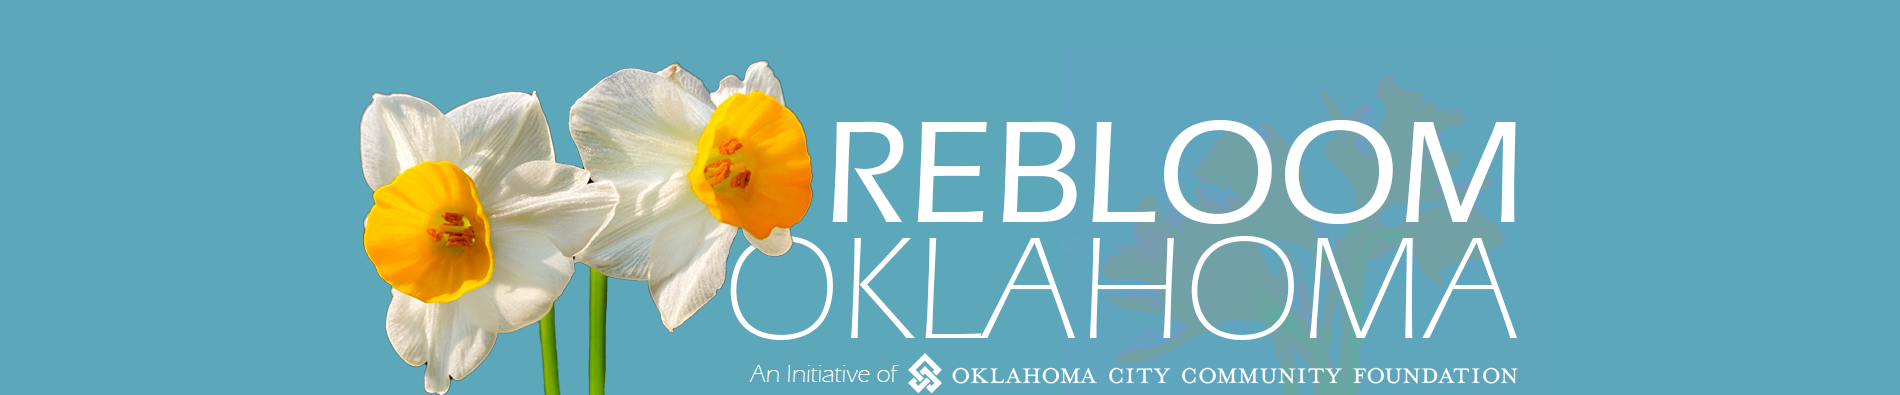 Rebloom Oklahoma